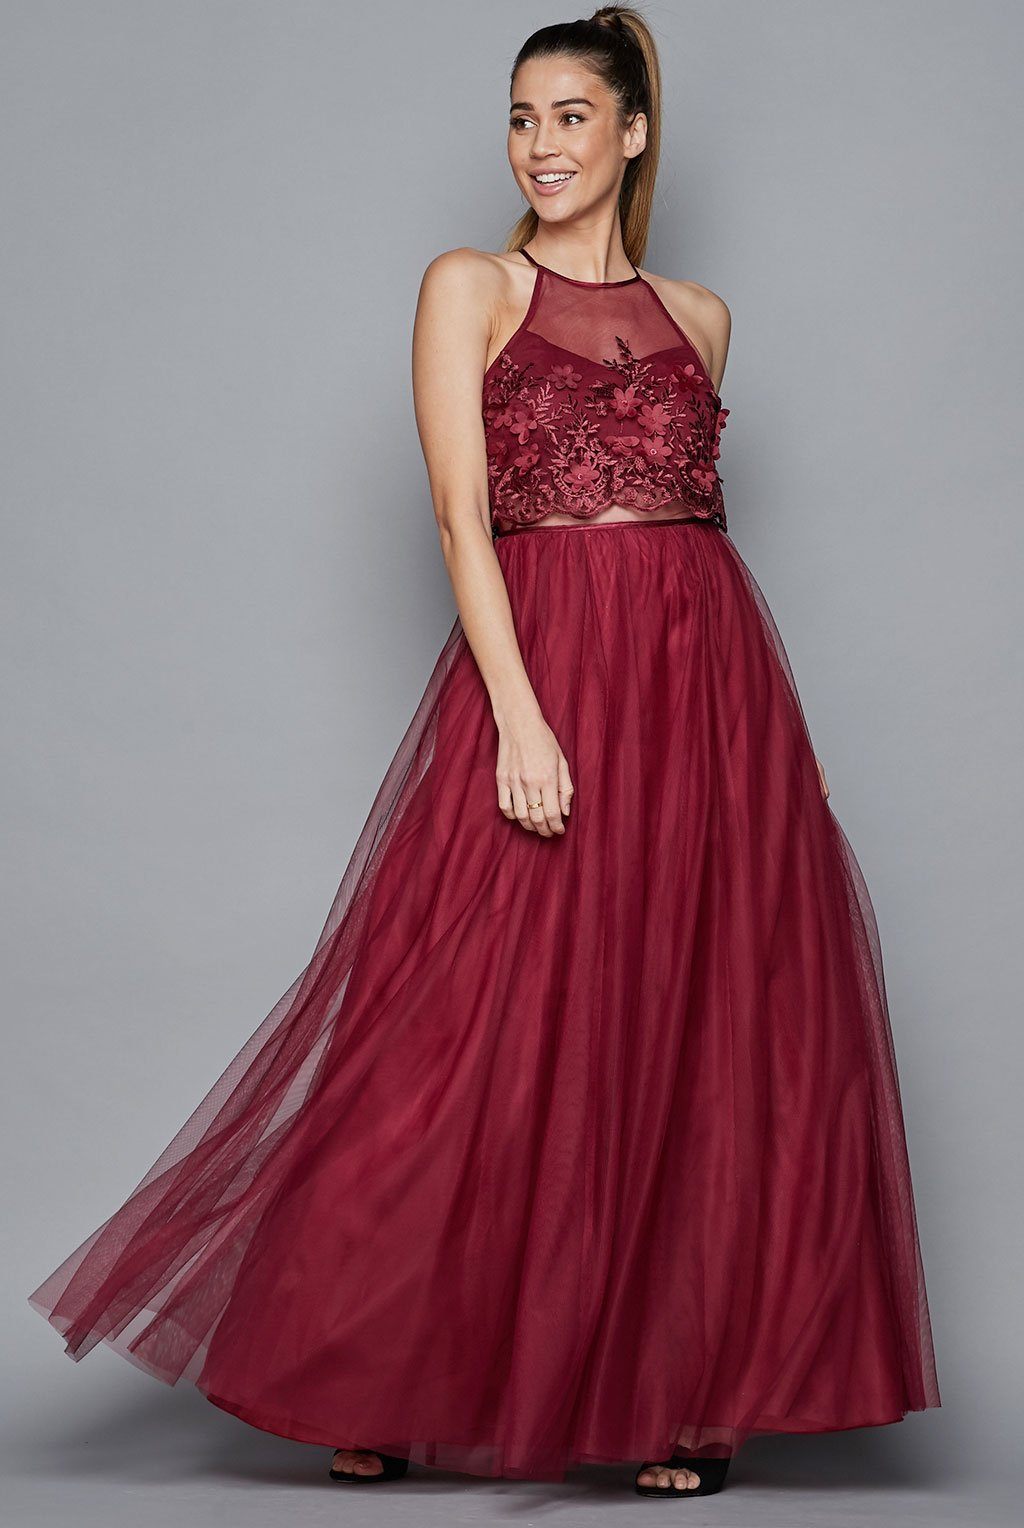 Teeze Me | Pop Over 3D Flower Embroidery Ball Gown | Burgundy